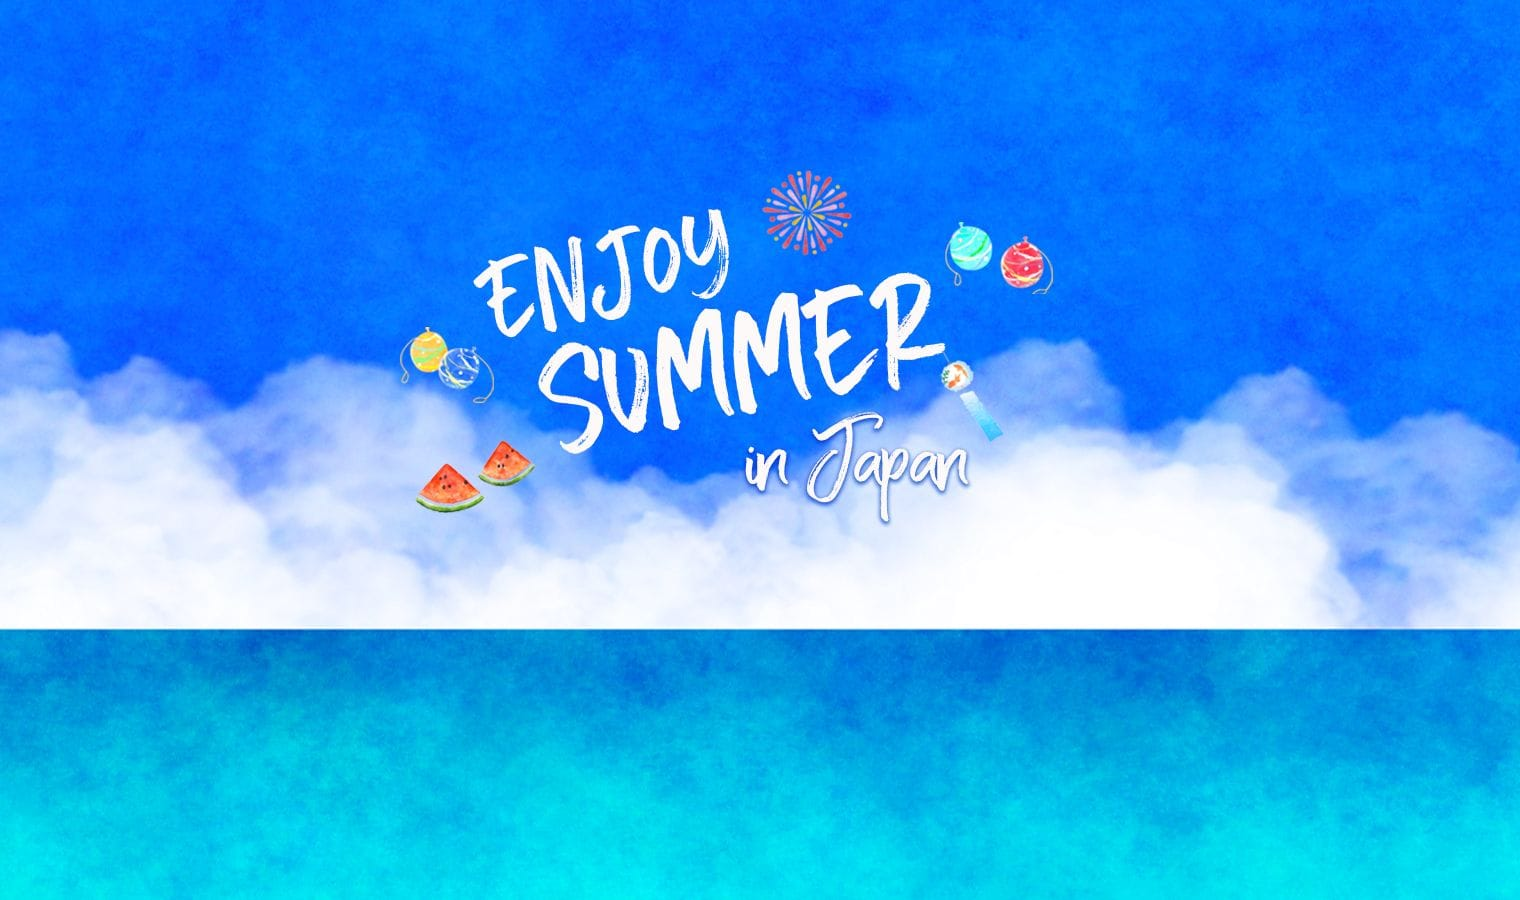 Enjoy Summer in Japan